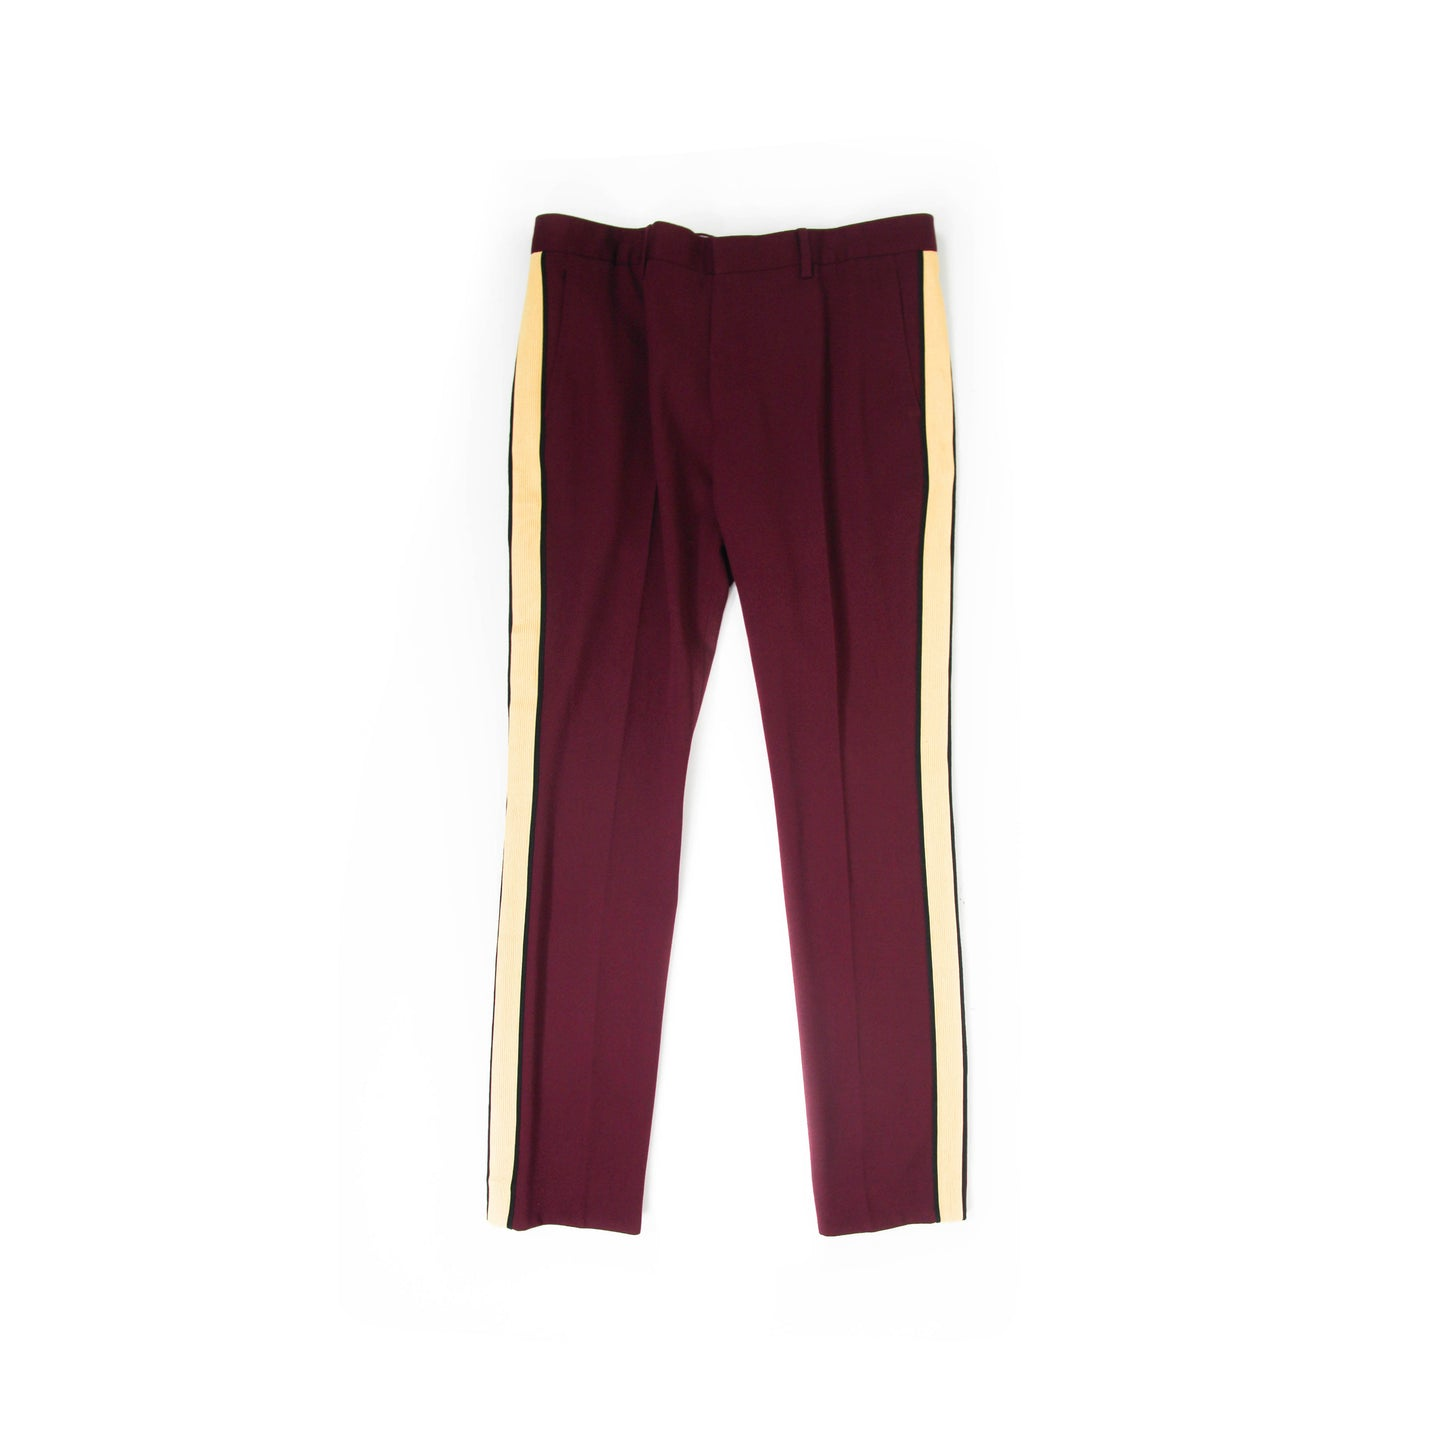 Burgundy Striped Runway Trousers